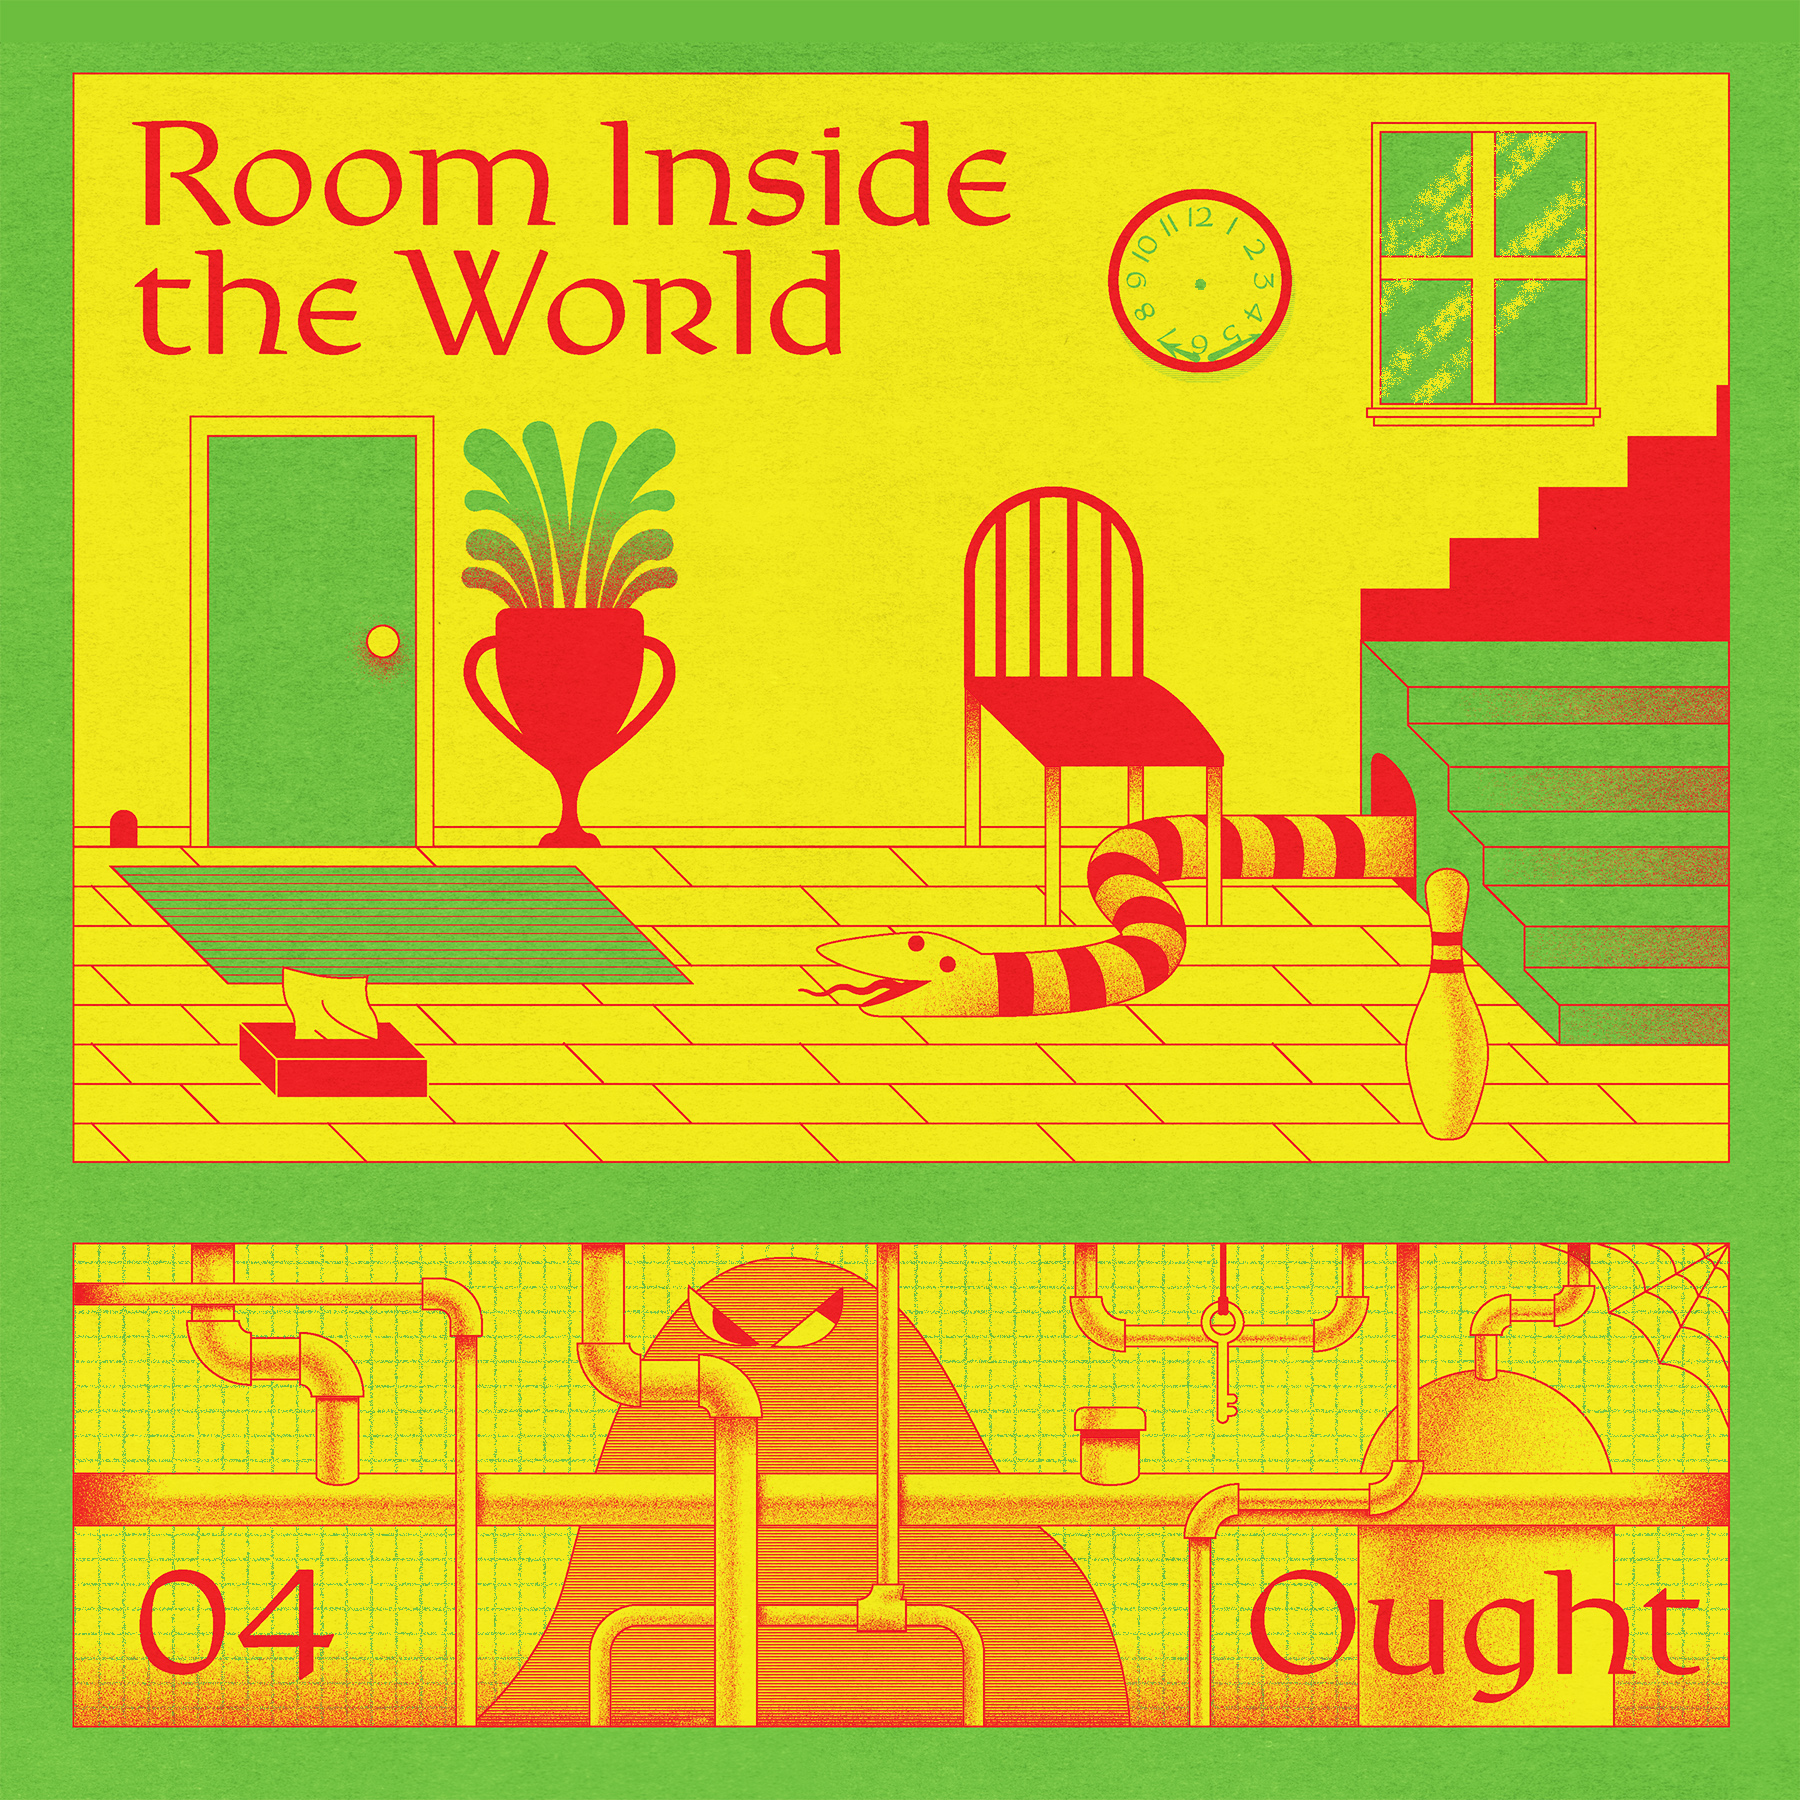 Room Inside the World by Ought